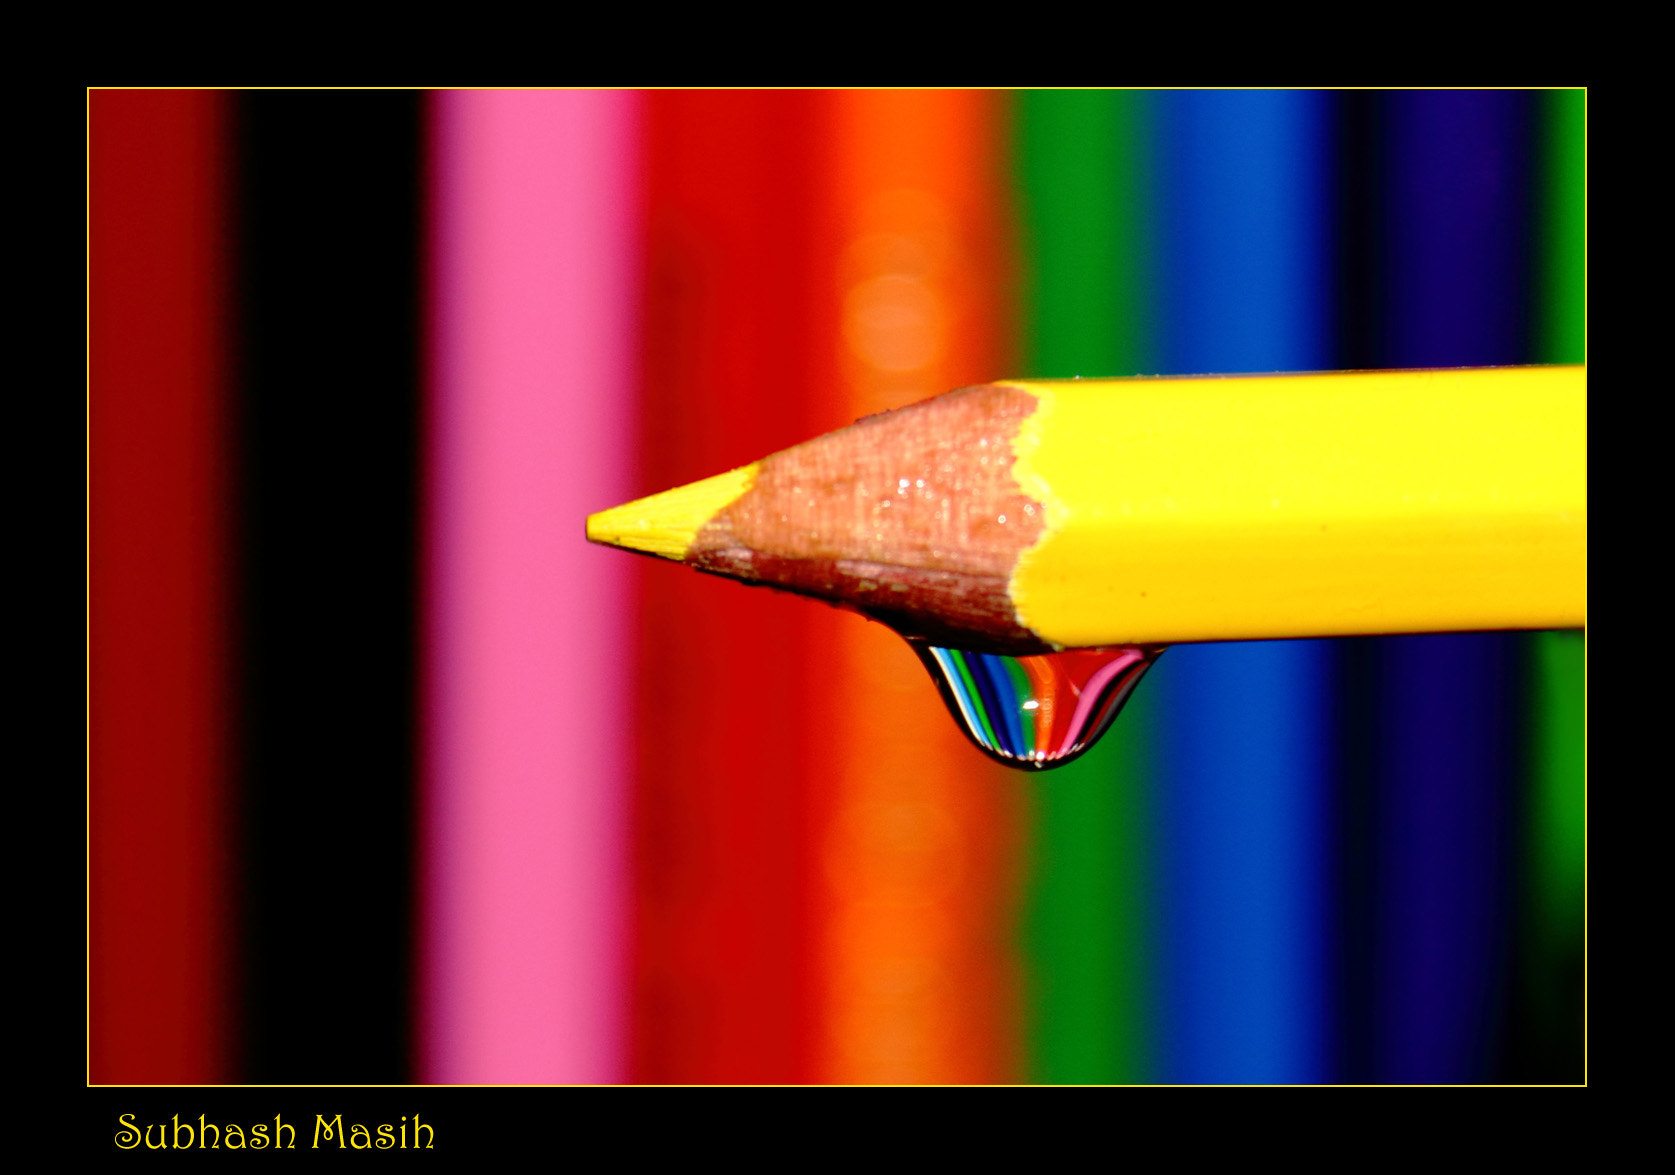 Photograph Colors by Subhash Masih on 500px